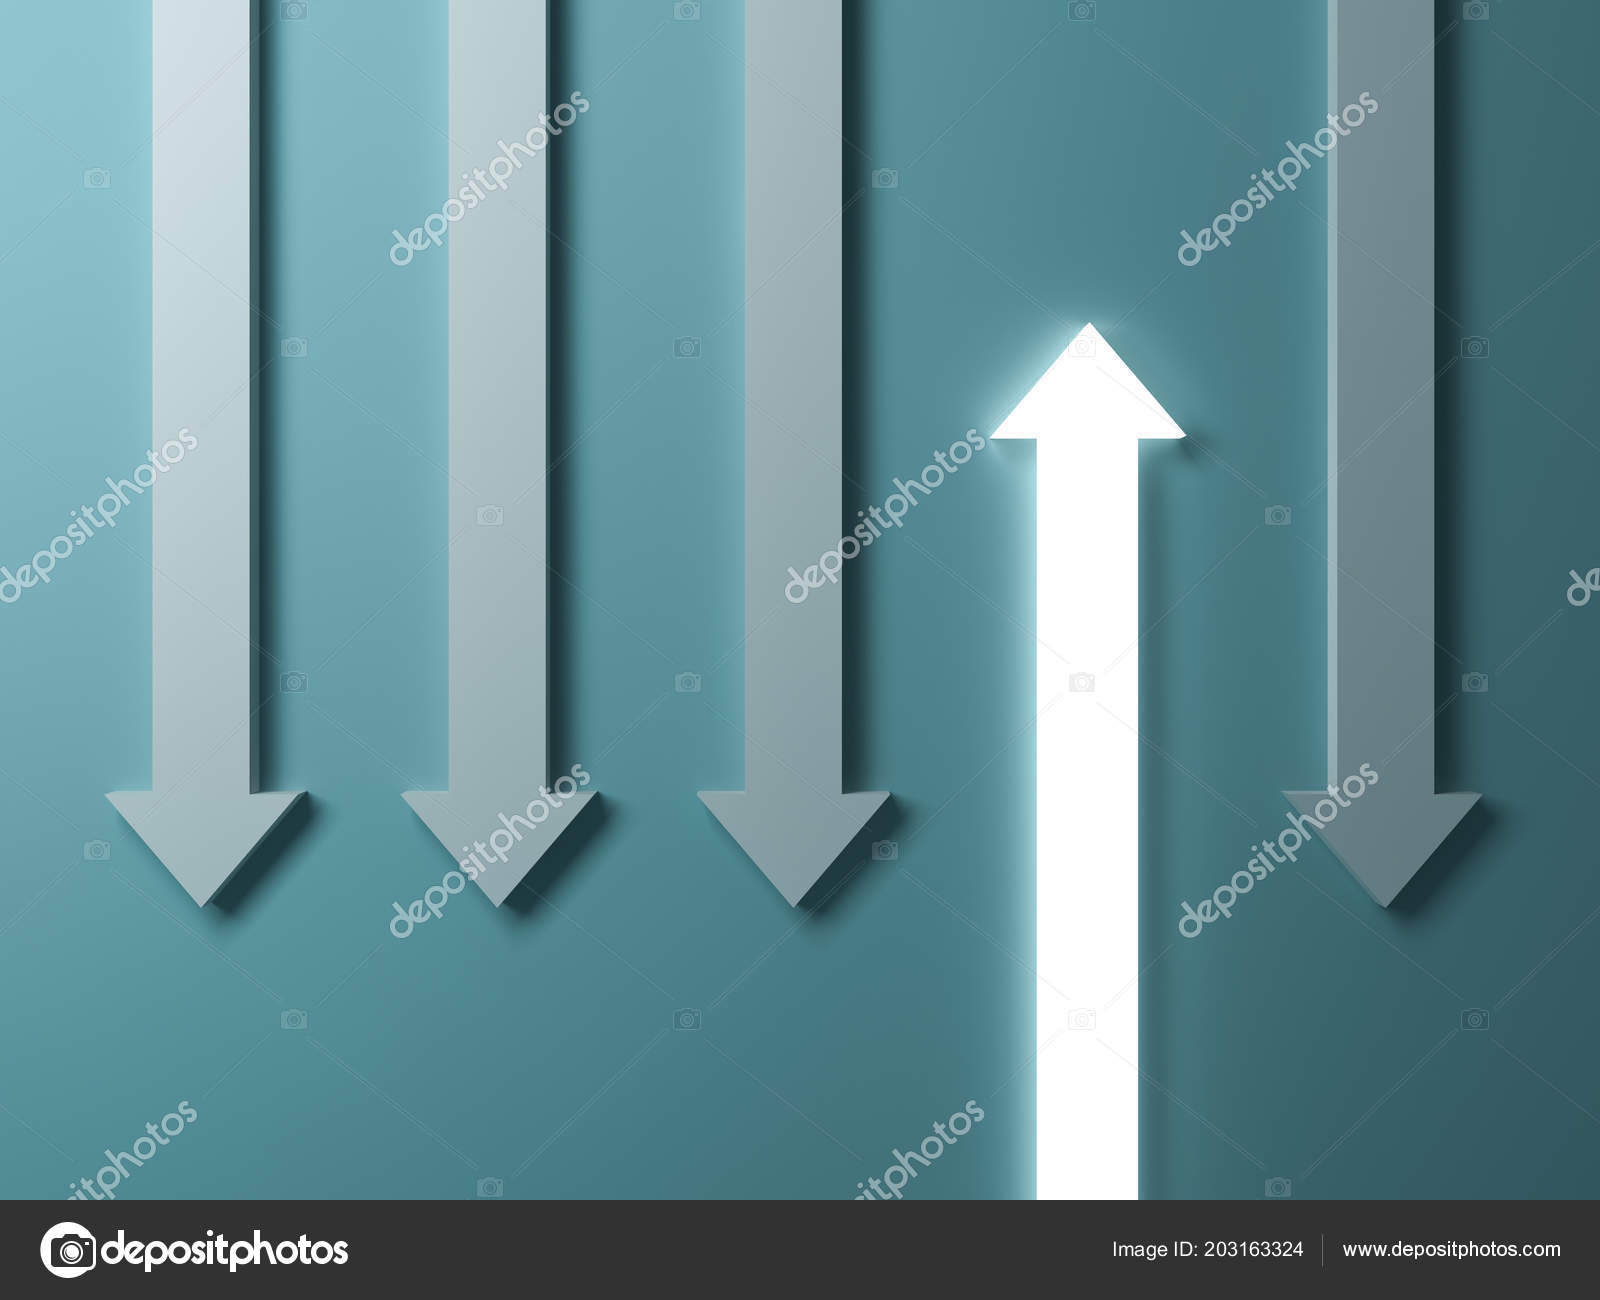 Stand Out Crowd Different Concept One Glowing Light Arrow Other Stock Photo C 3dconceptsman 203163324 Download for free in png, svg, pdf formats 👆. depositphotos